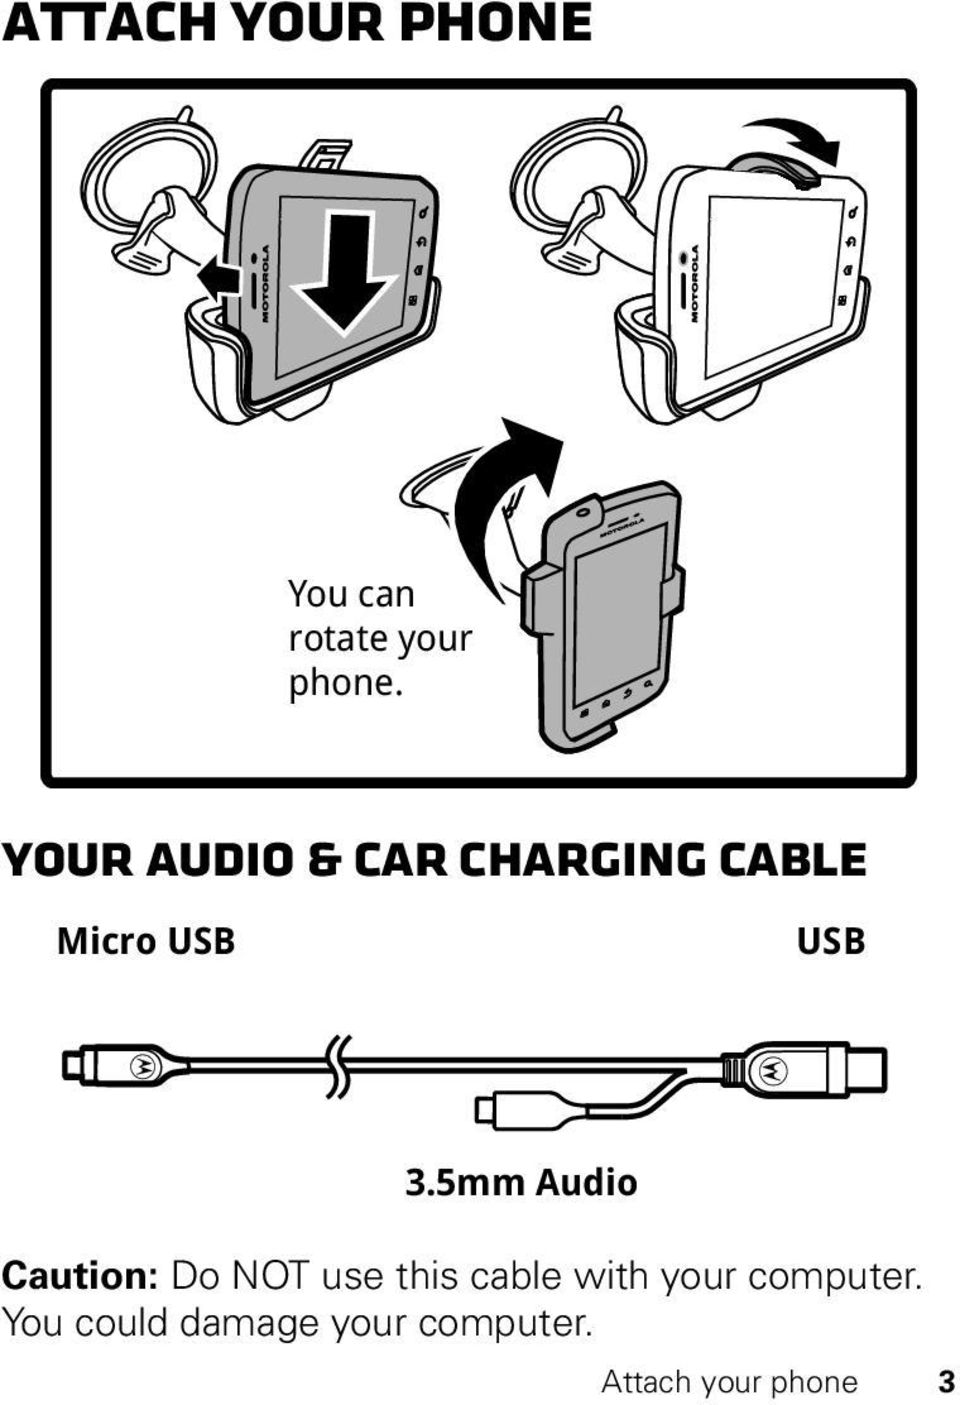 5mm Audio Caution: Do NOT use this cable with your